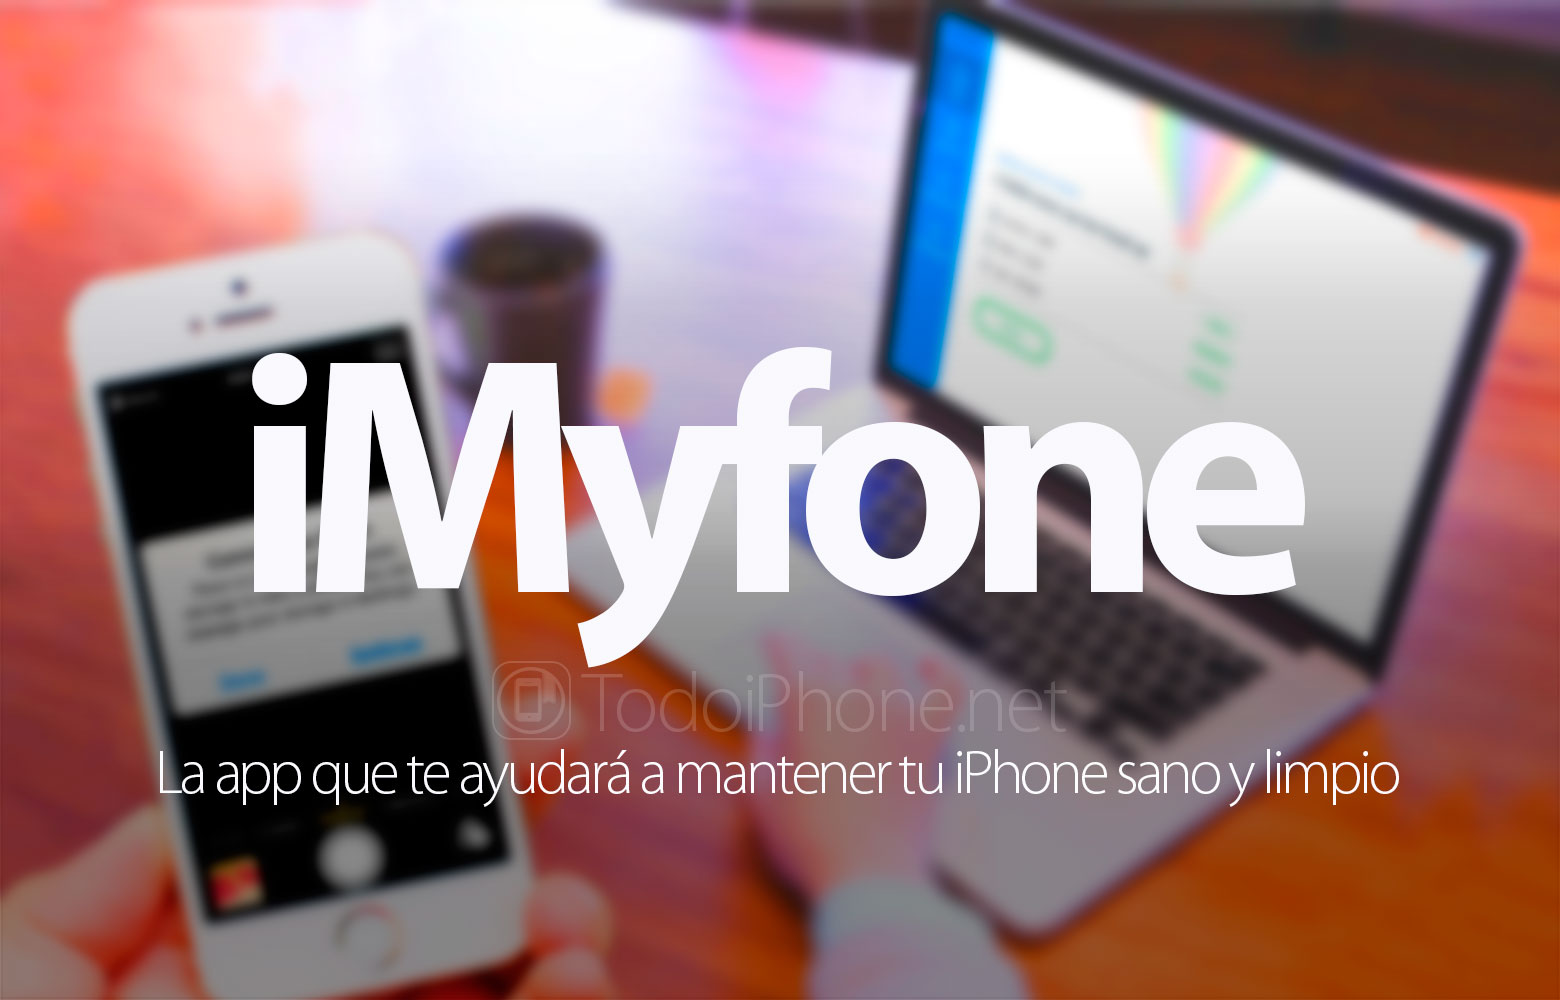 iMyfone, the app that will help you keep your iPhone healthy and clean 1